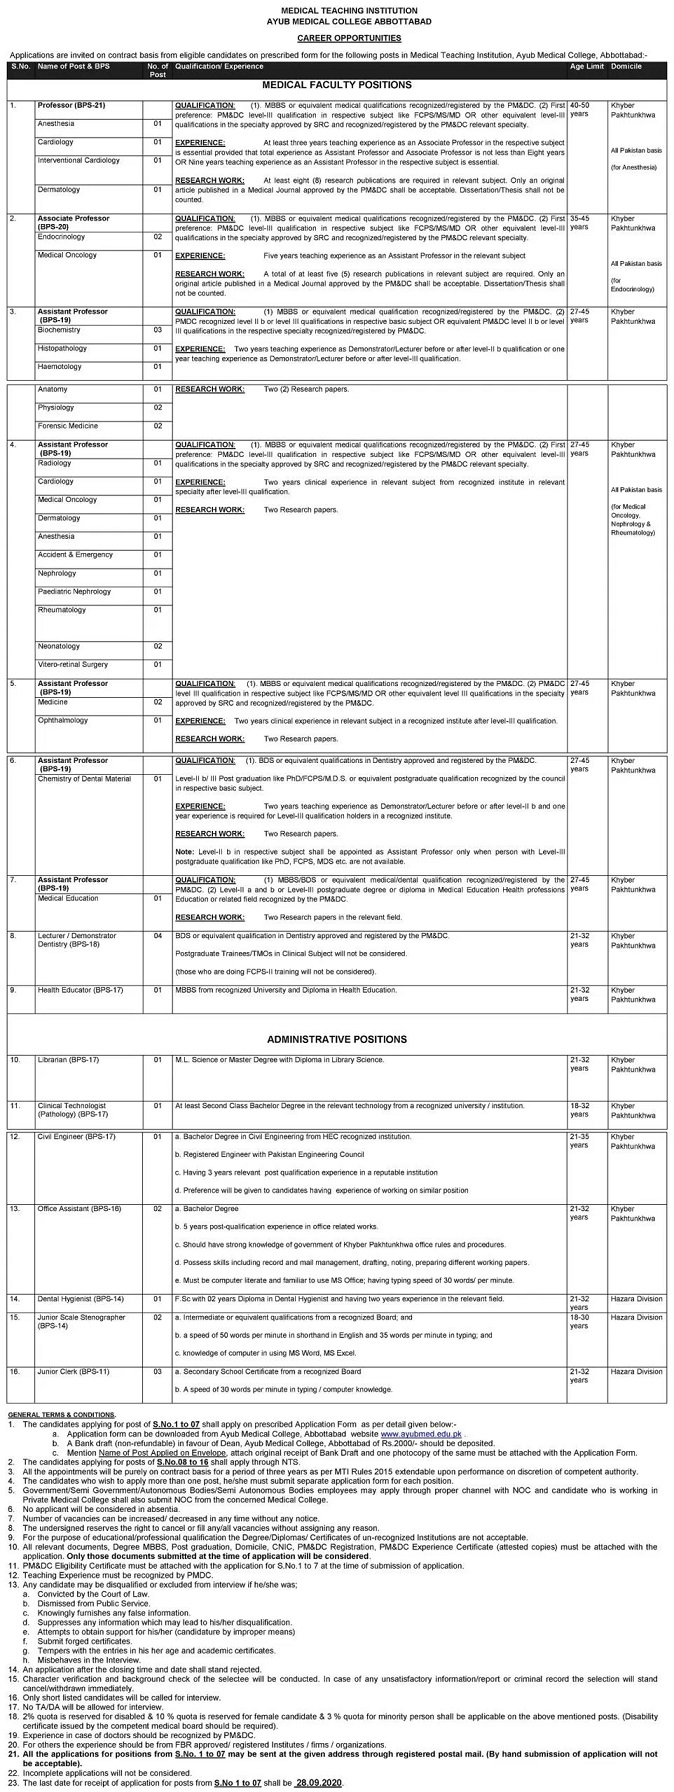 Medical Teaching Institution Ayub Medical College Jobs NTS Test Result